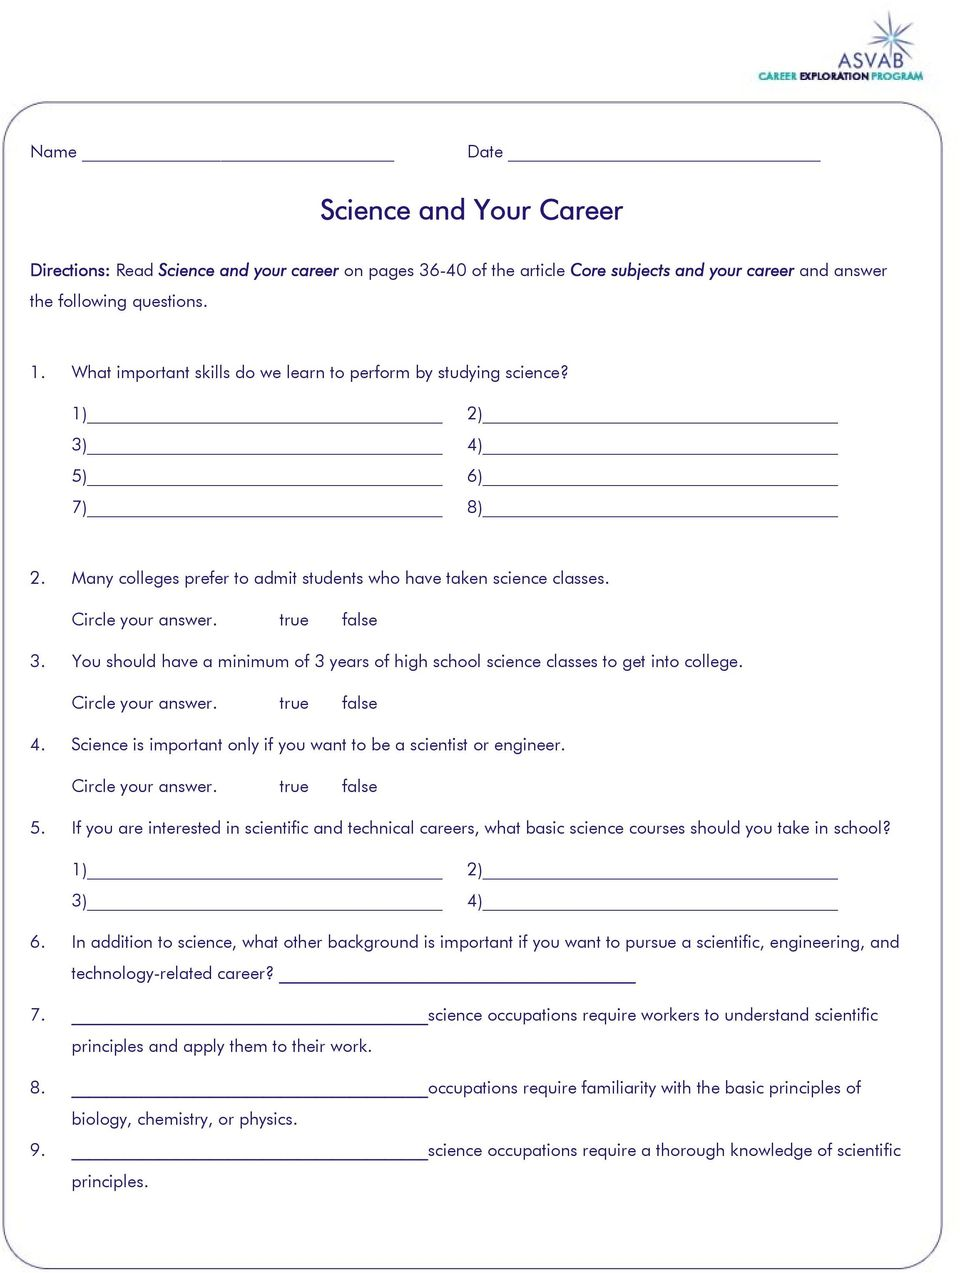 4. Science is important only if you want to be a scientist or engineer. 5. If you are interested in scientific and technical careers, what basic science courses should you take in school?